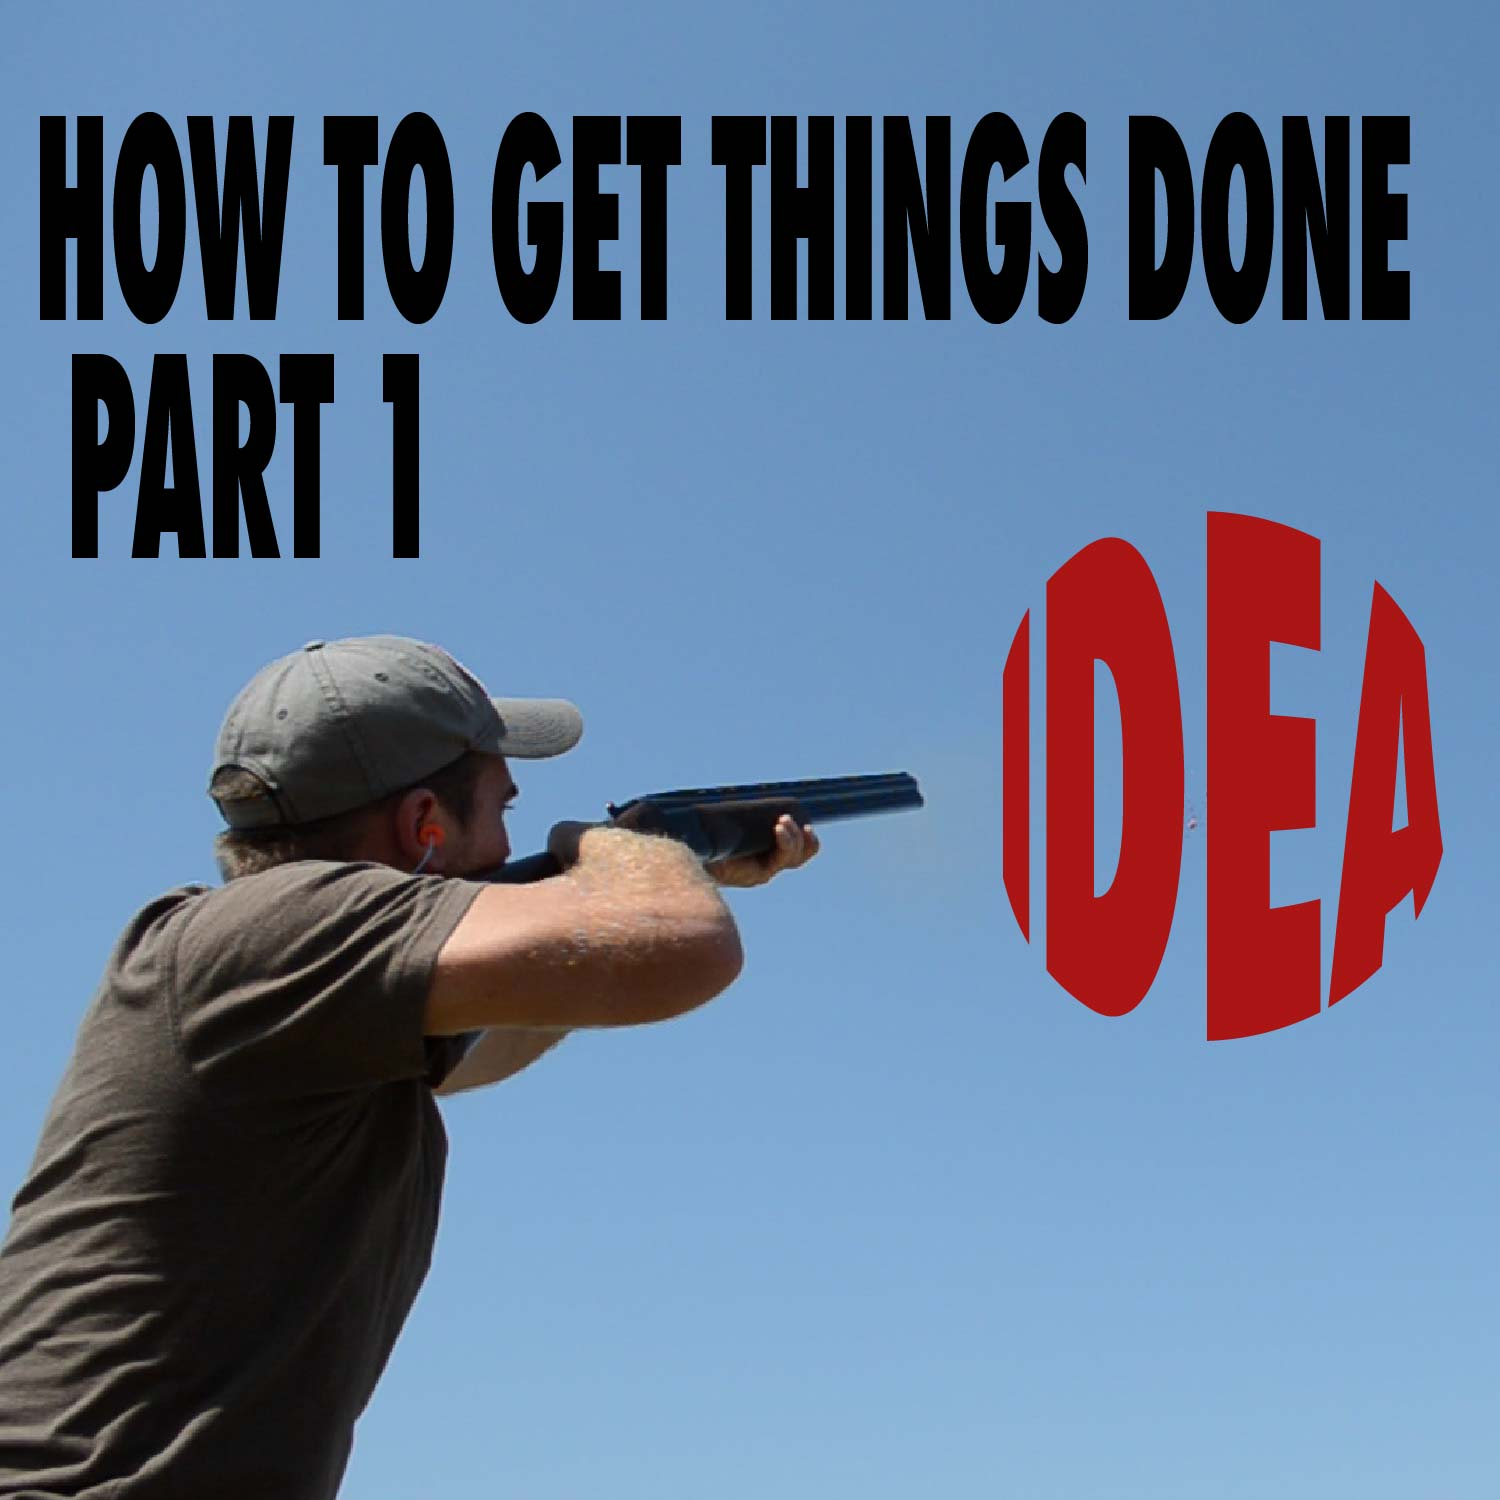 Image of an IDEA being shot down by a skeet shooter. Title: HOW TO GET THINGS DONE, PART 1